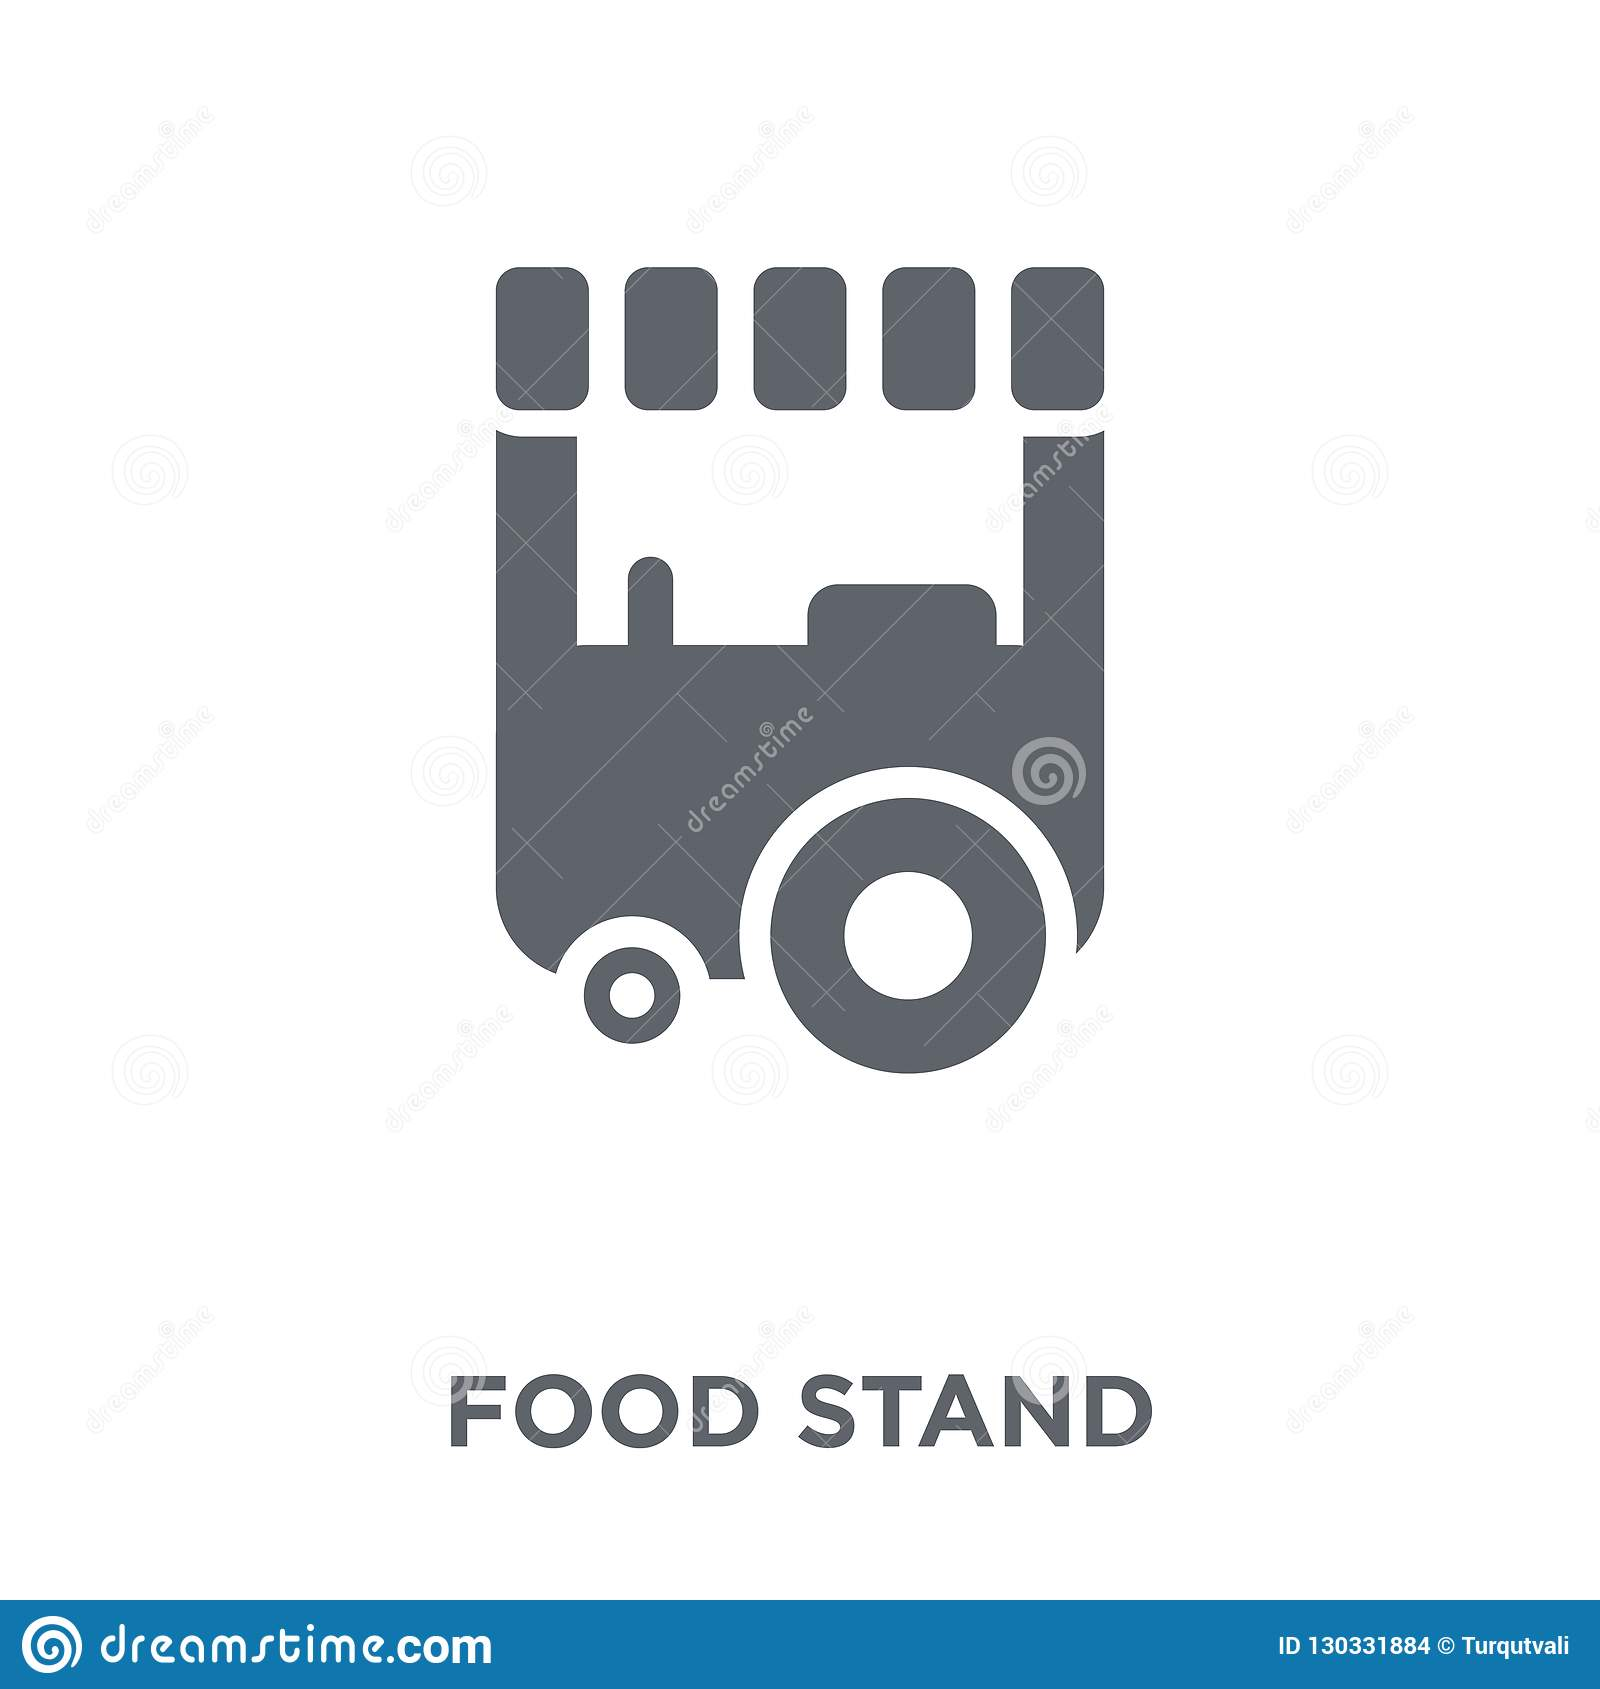 Food Stand Icon From Collection  Stock Vector - Illustration of